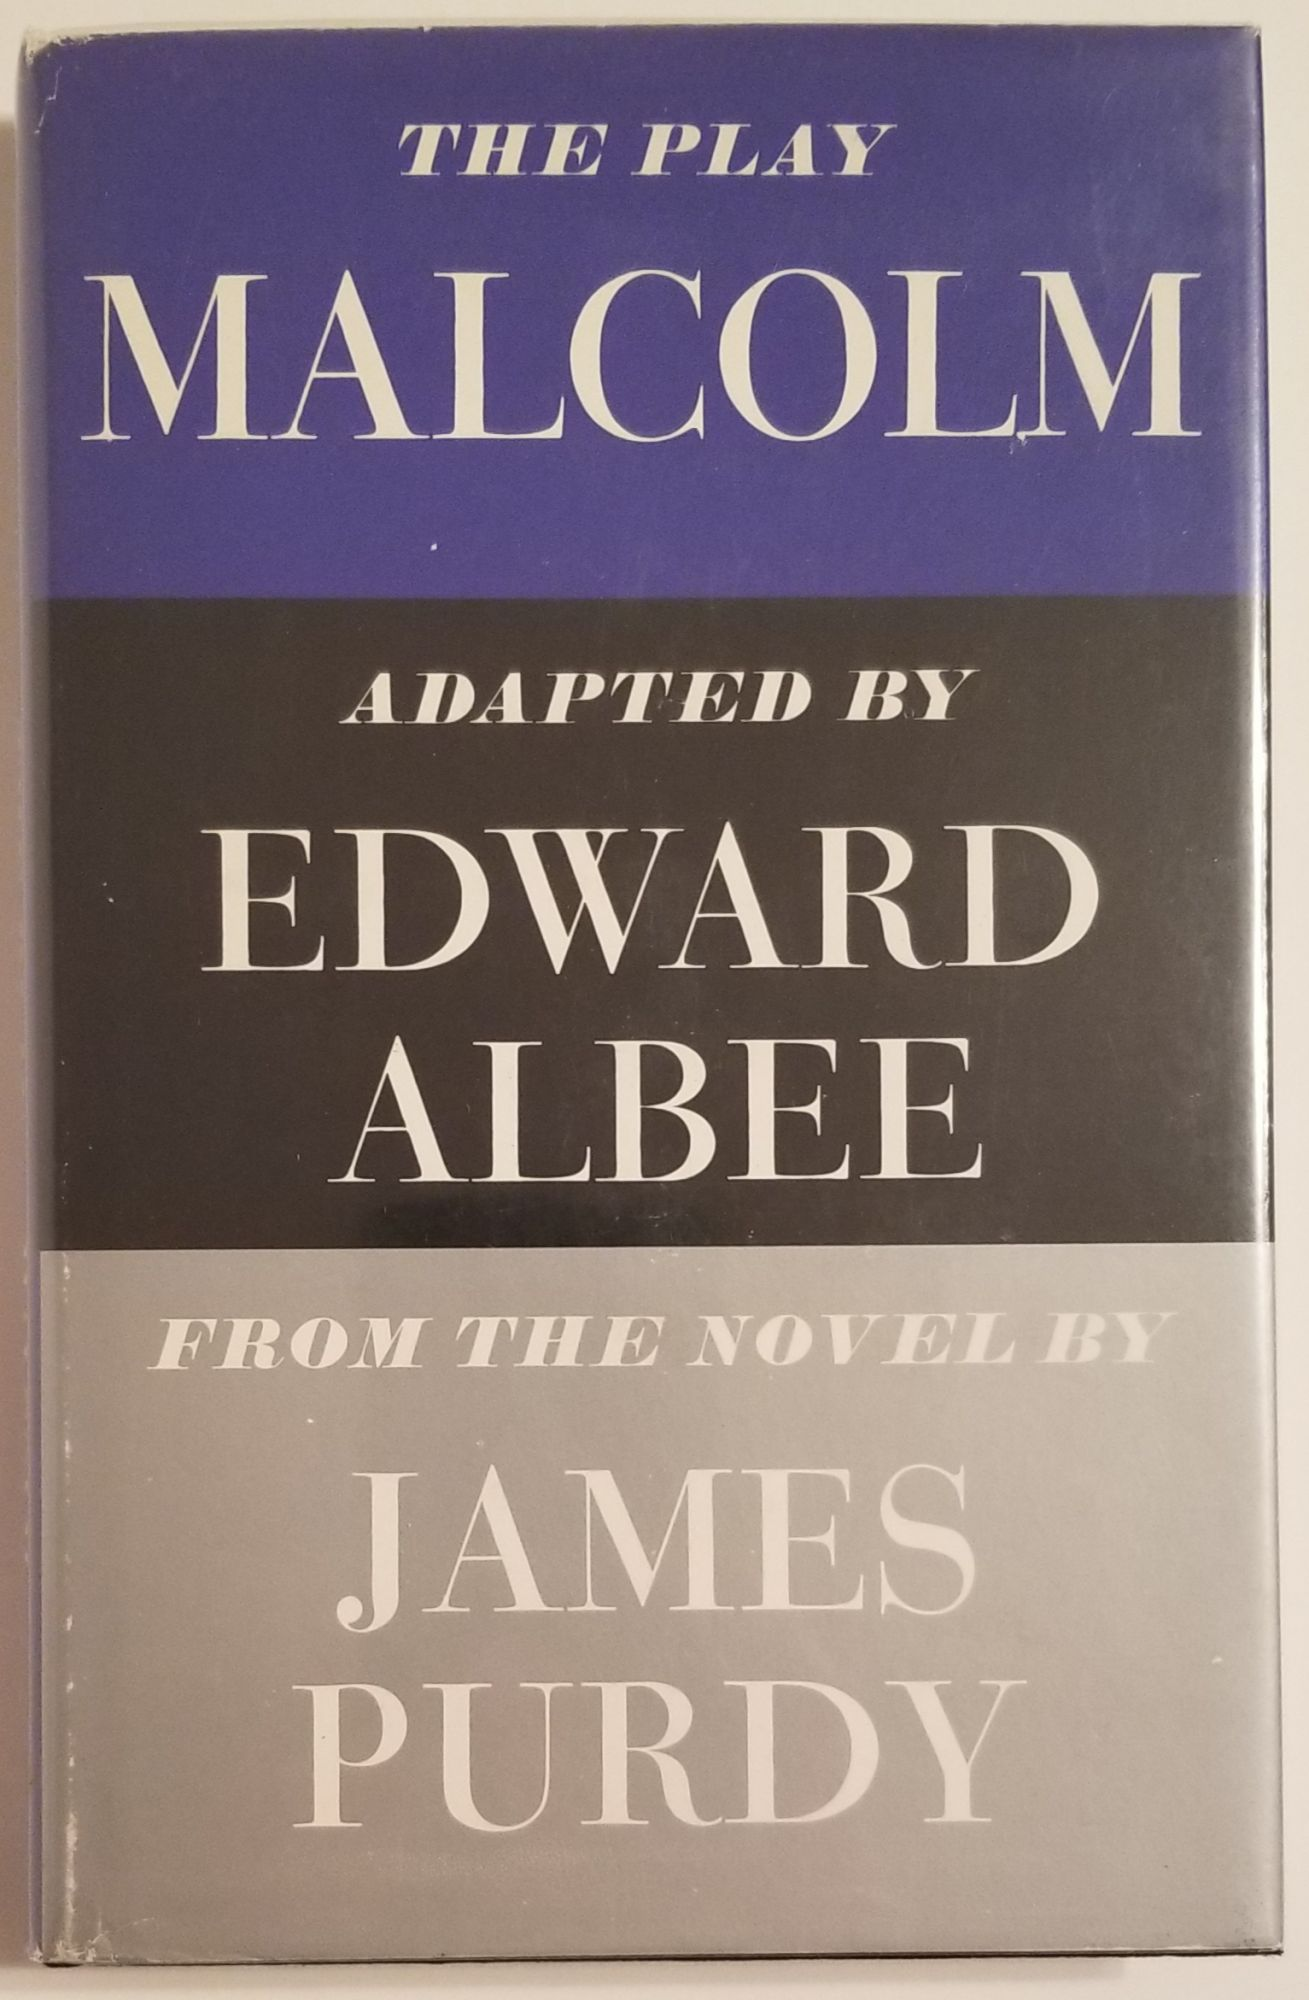 MALCOLM The Play. Adapted from the novel by James Purdy. Edward Albee.